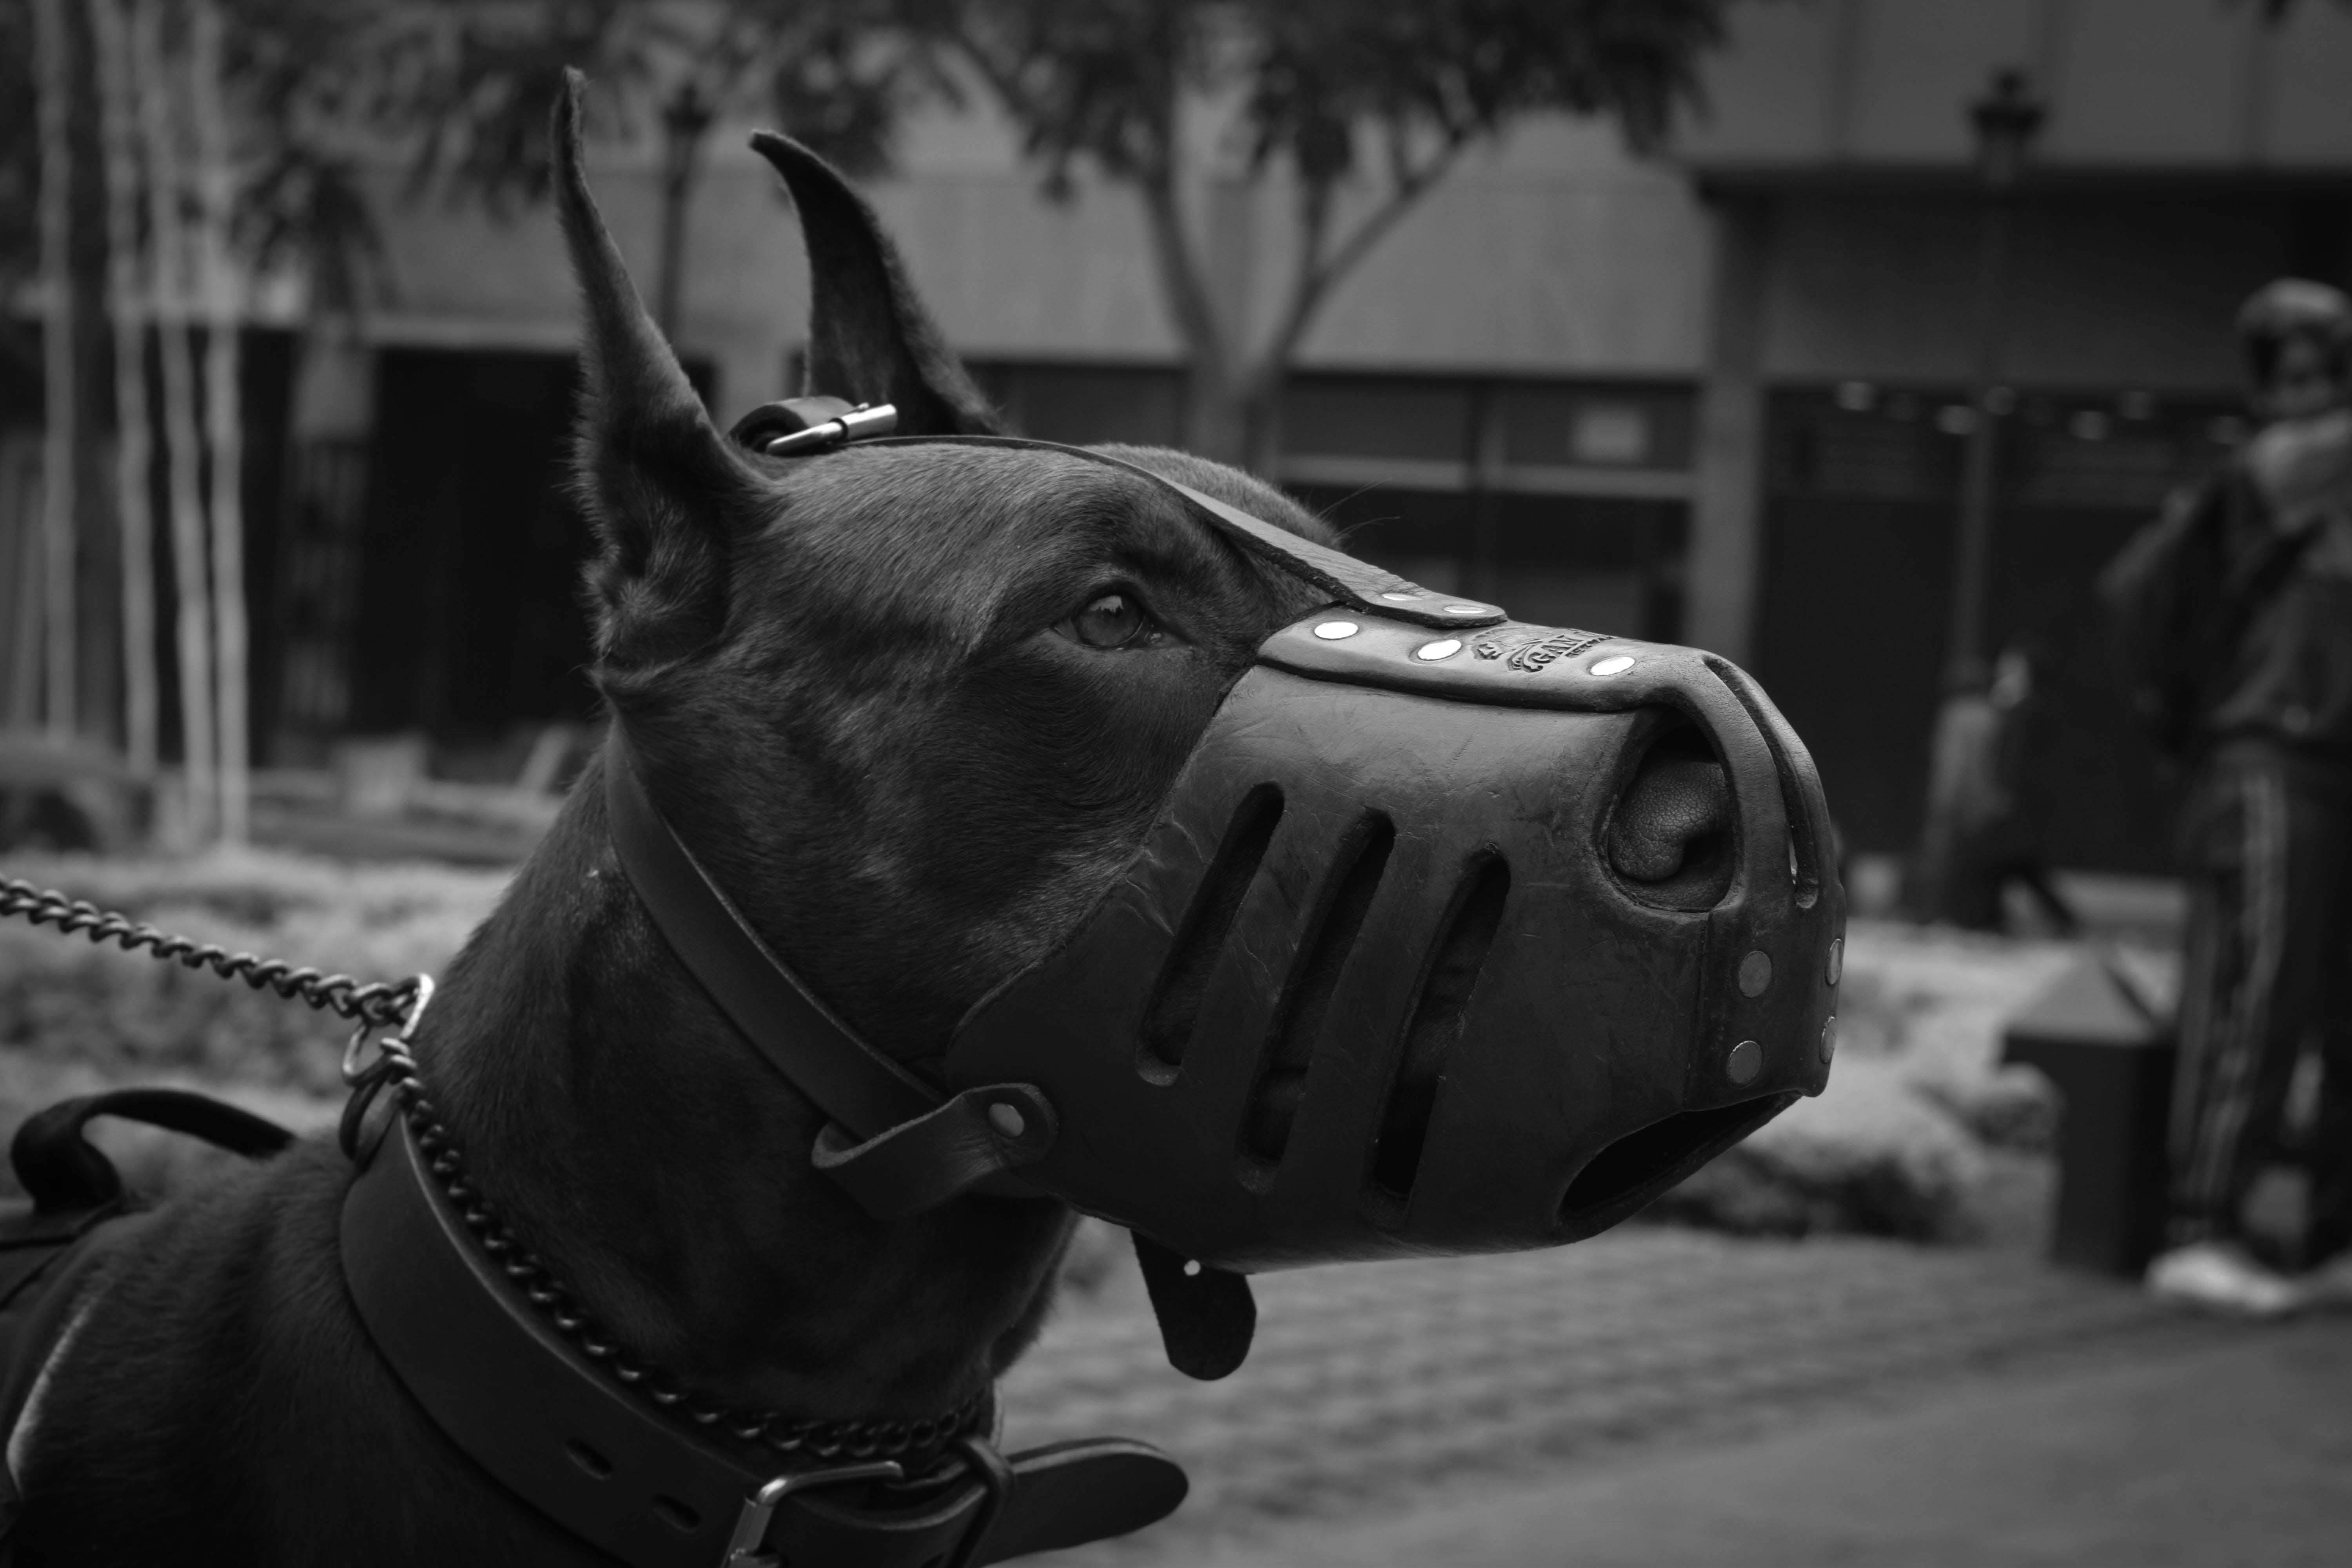 Close-Up Photo of Doberman Pinscher With Black Muzzle